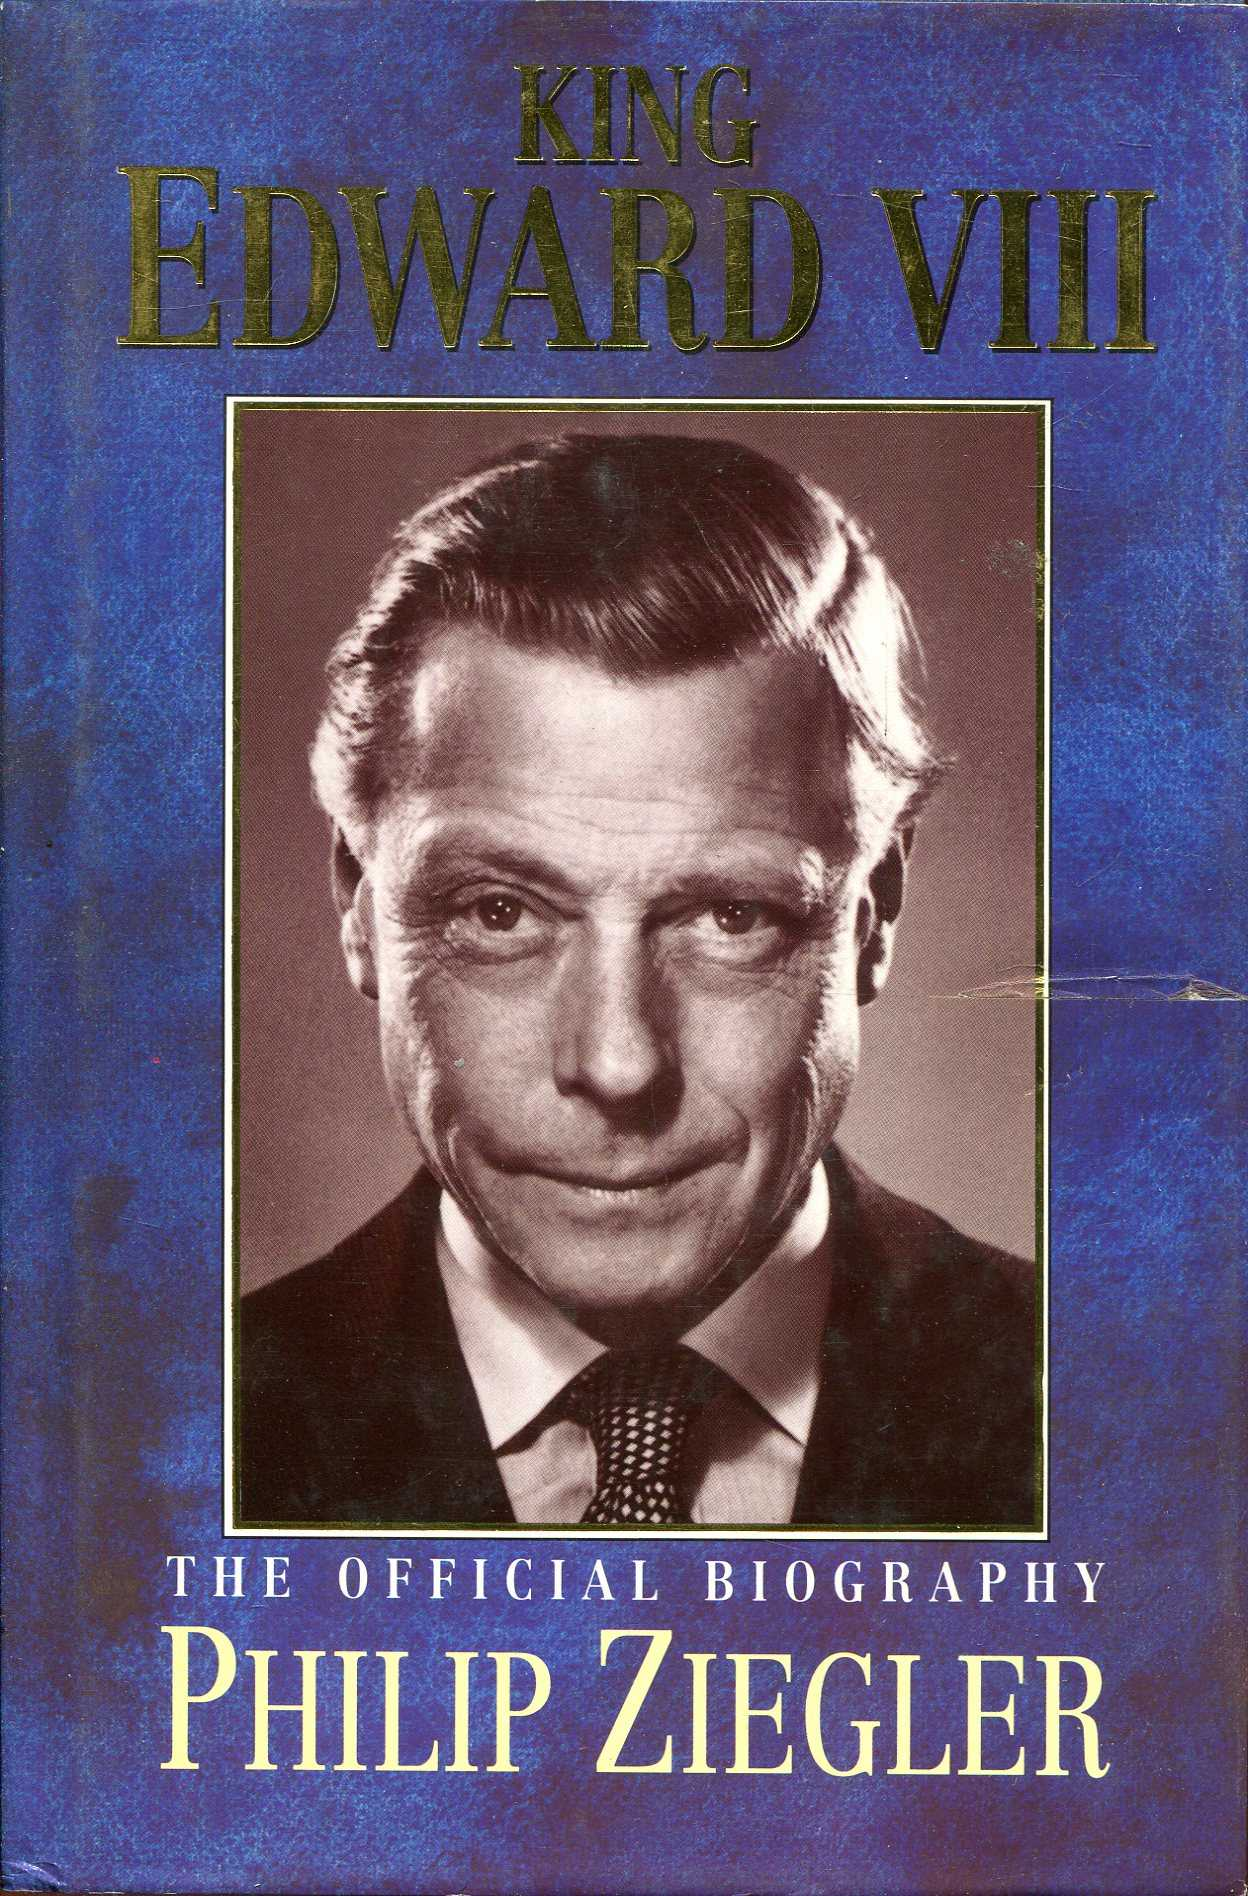 Image for King Edward VIII: The official biography